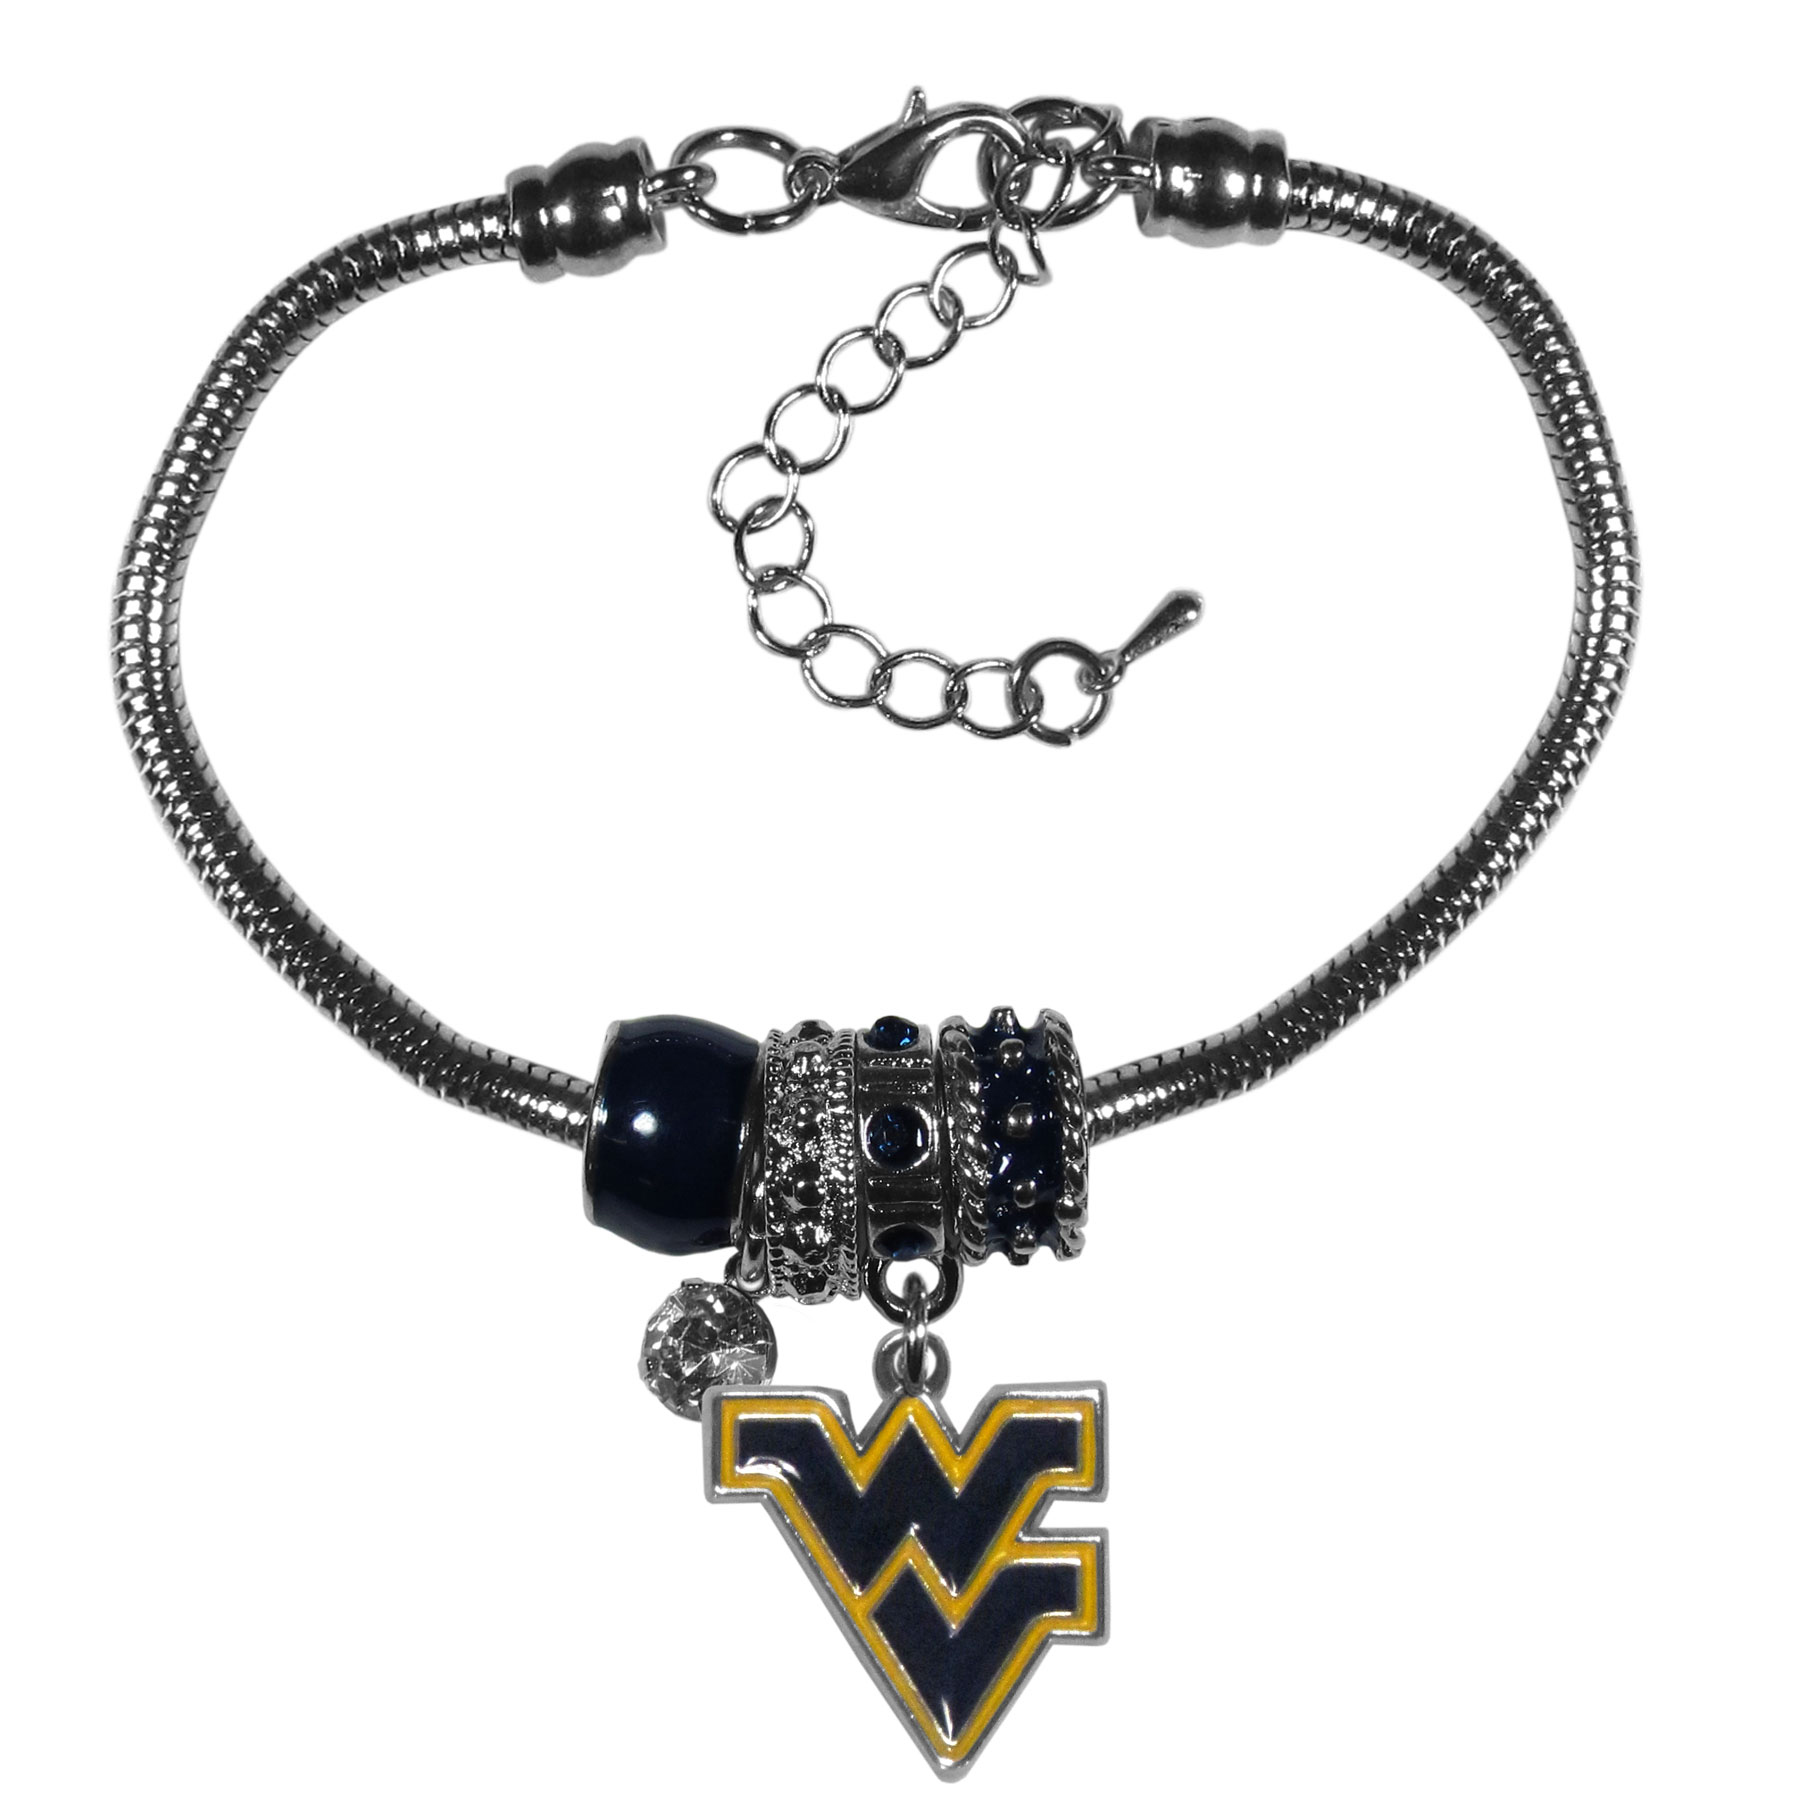 W. Virginia Mountaineers Euro Bead Bracelet - We have combined the wildly popular Euro style beads with your favorite team to create our  W. Virginia Mountaineers bead bracelet. The 7.5 inch snake chain with 2 inch extender features 4 Euro beads with enameled team colors and rhinestone accents with a high polish, nickel free charm and rhinestone charm. Perfect way to show off your team pride.